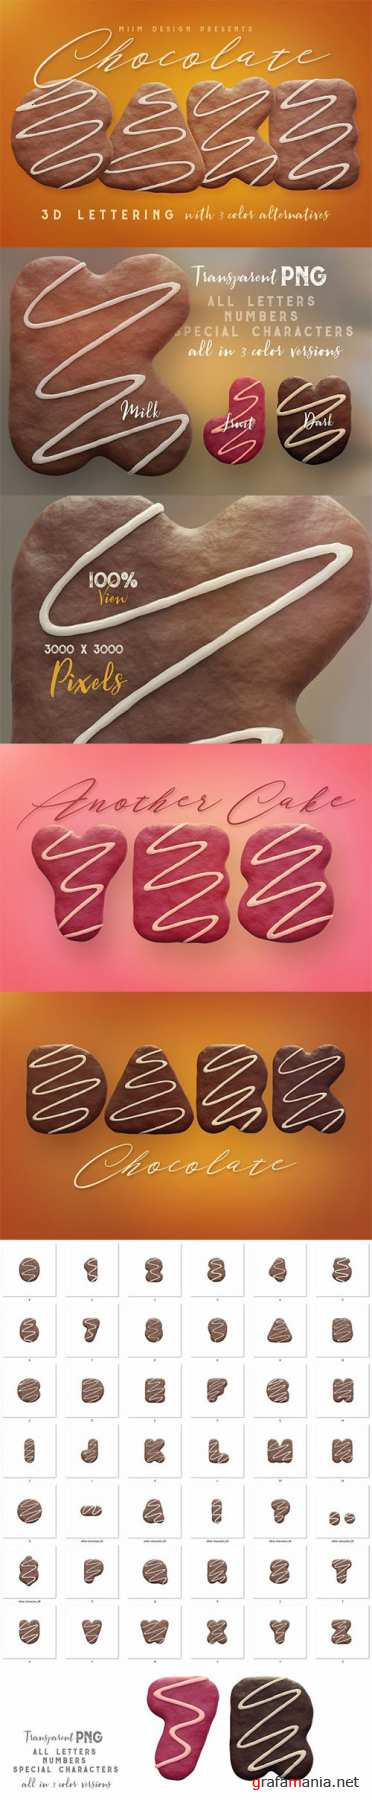 Chocolate Cake - 3D Lettering 2749554